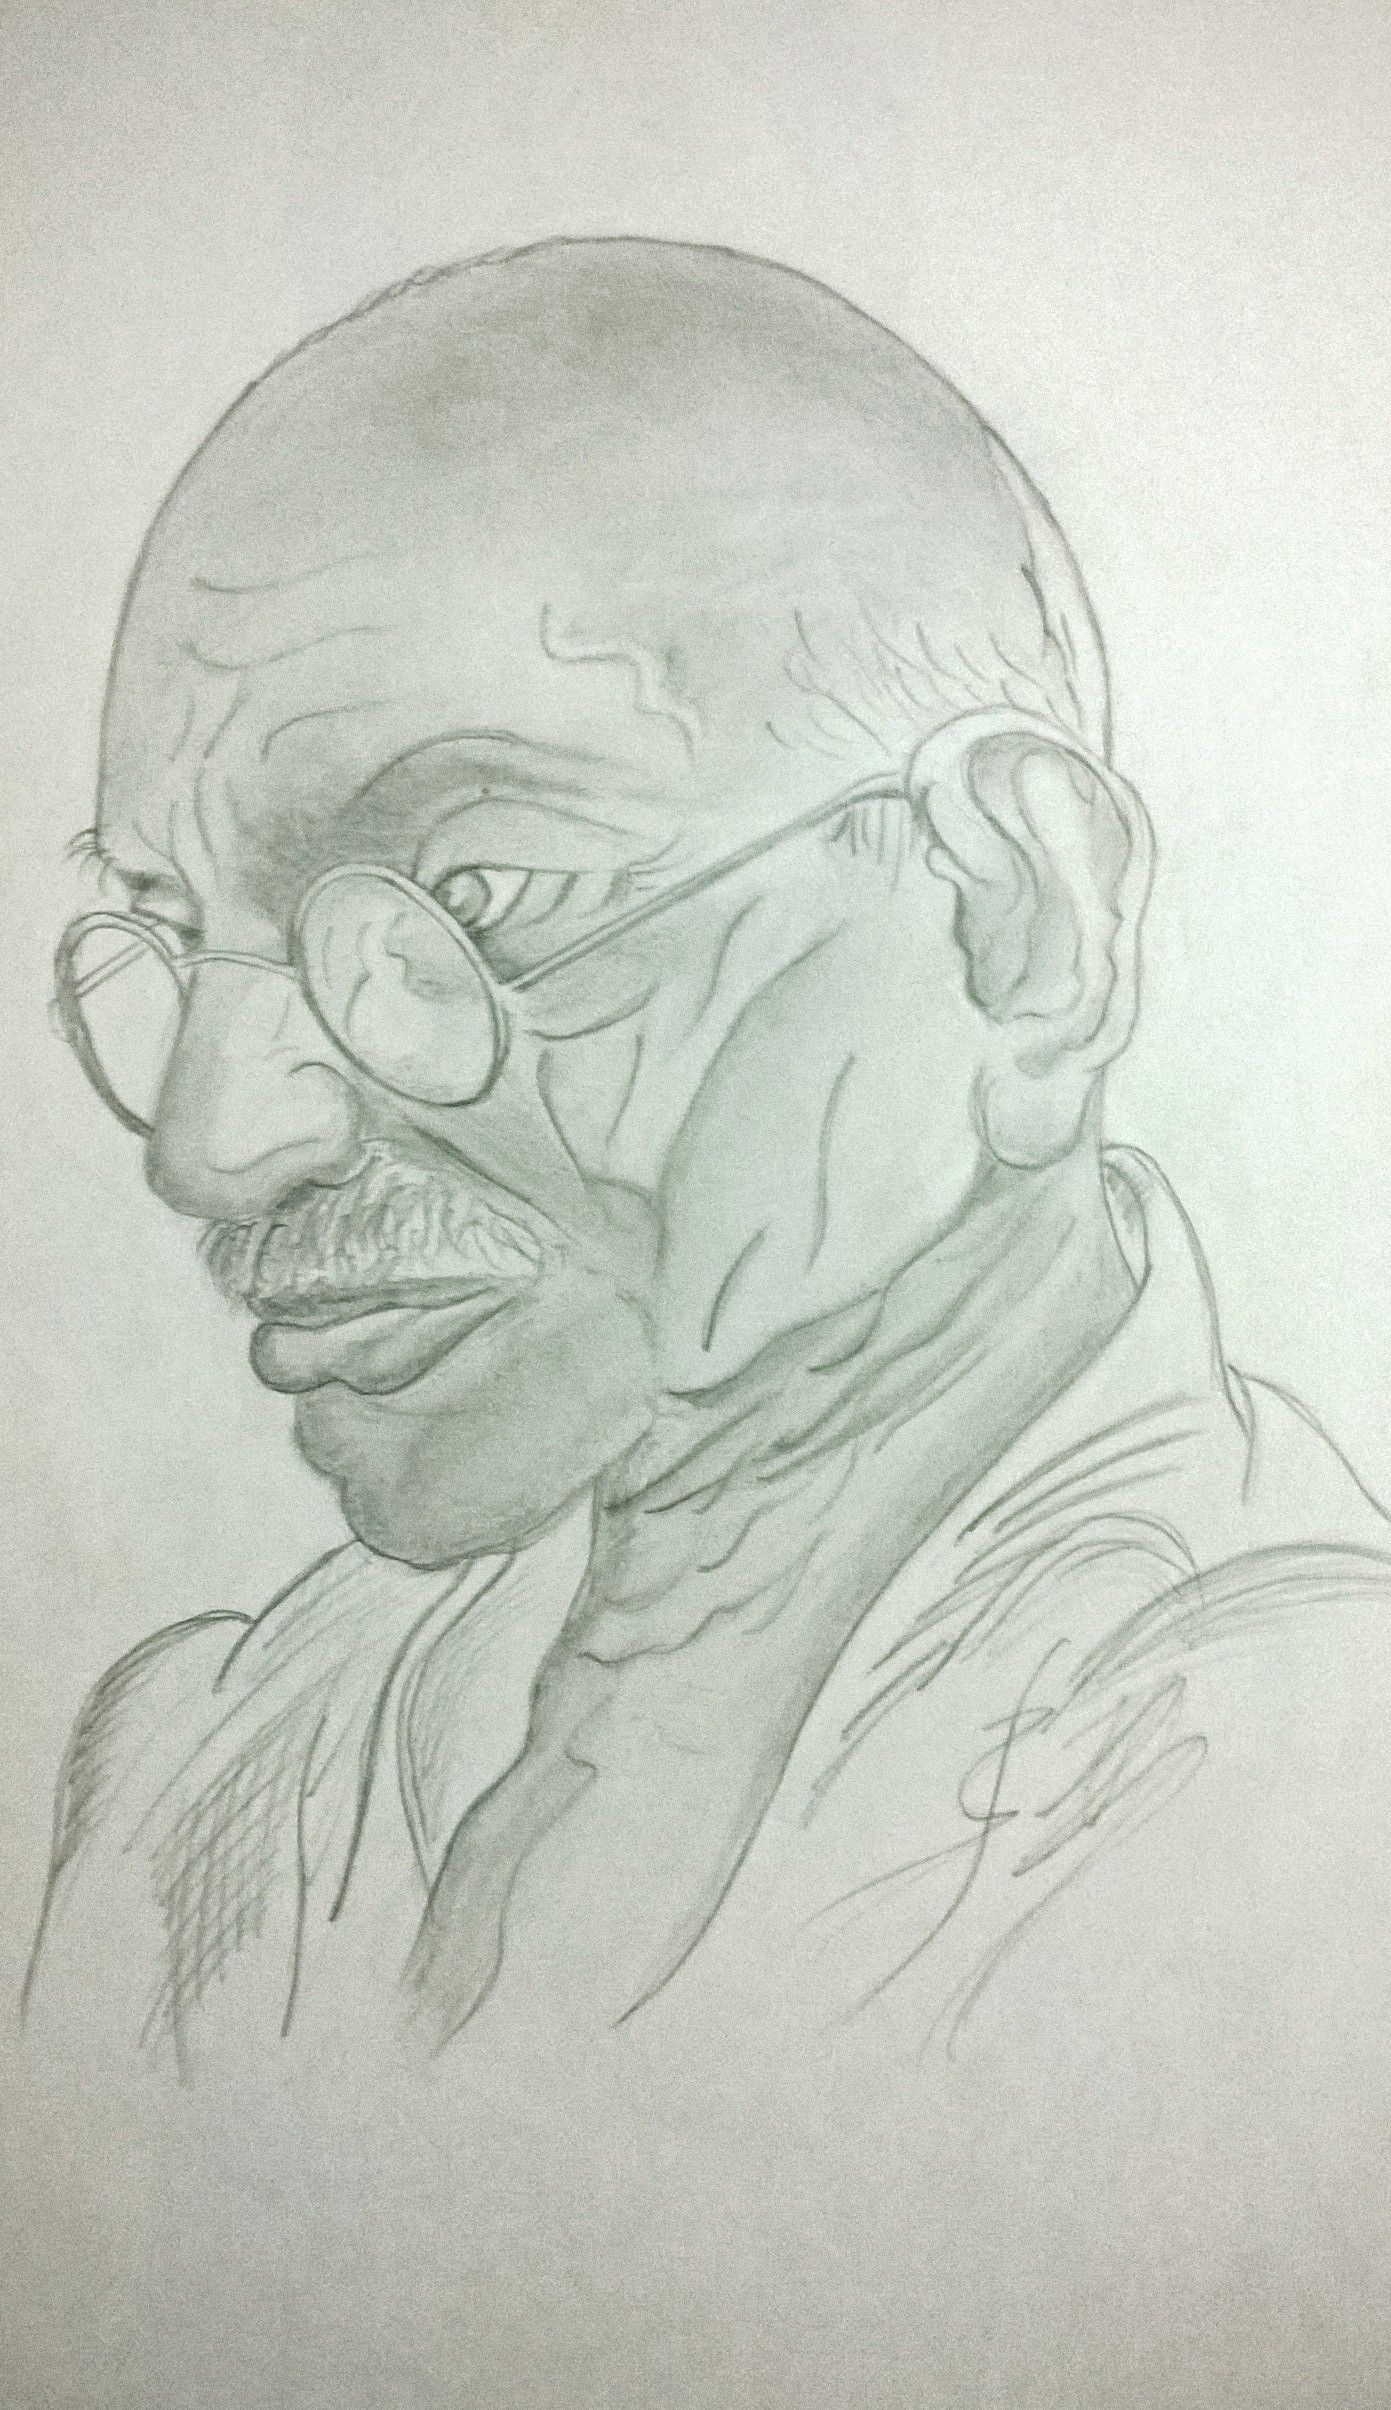 Mahatma gandhi mahatma gandhi pencil art sketches drawings sketch pencil drawings